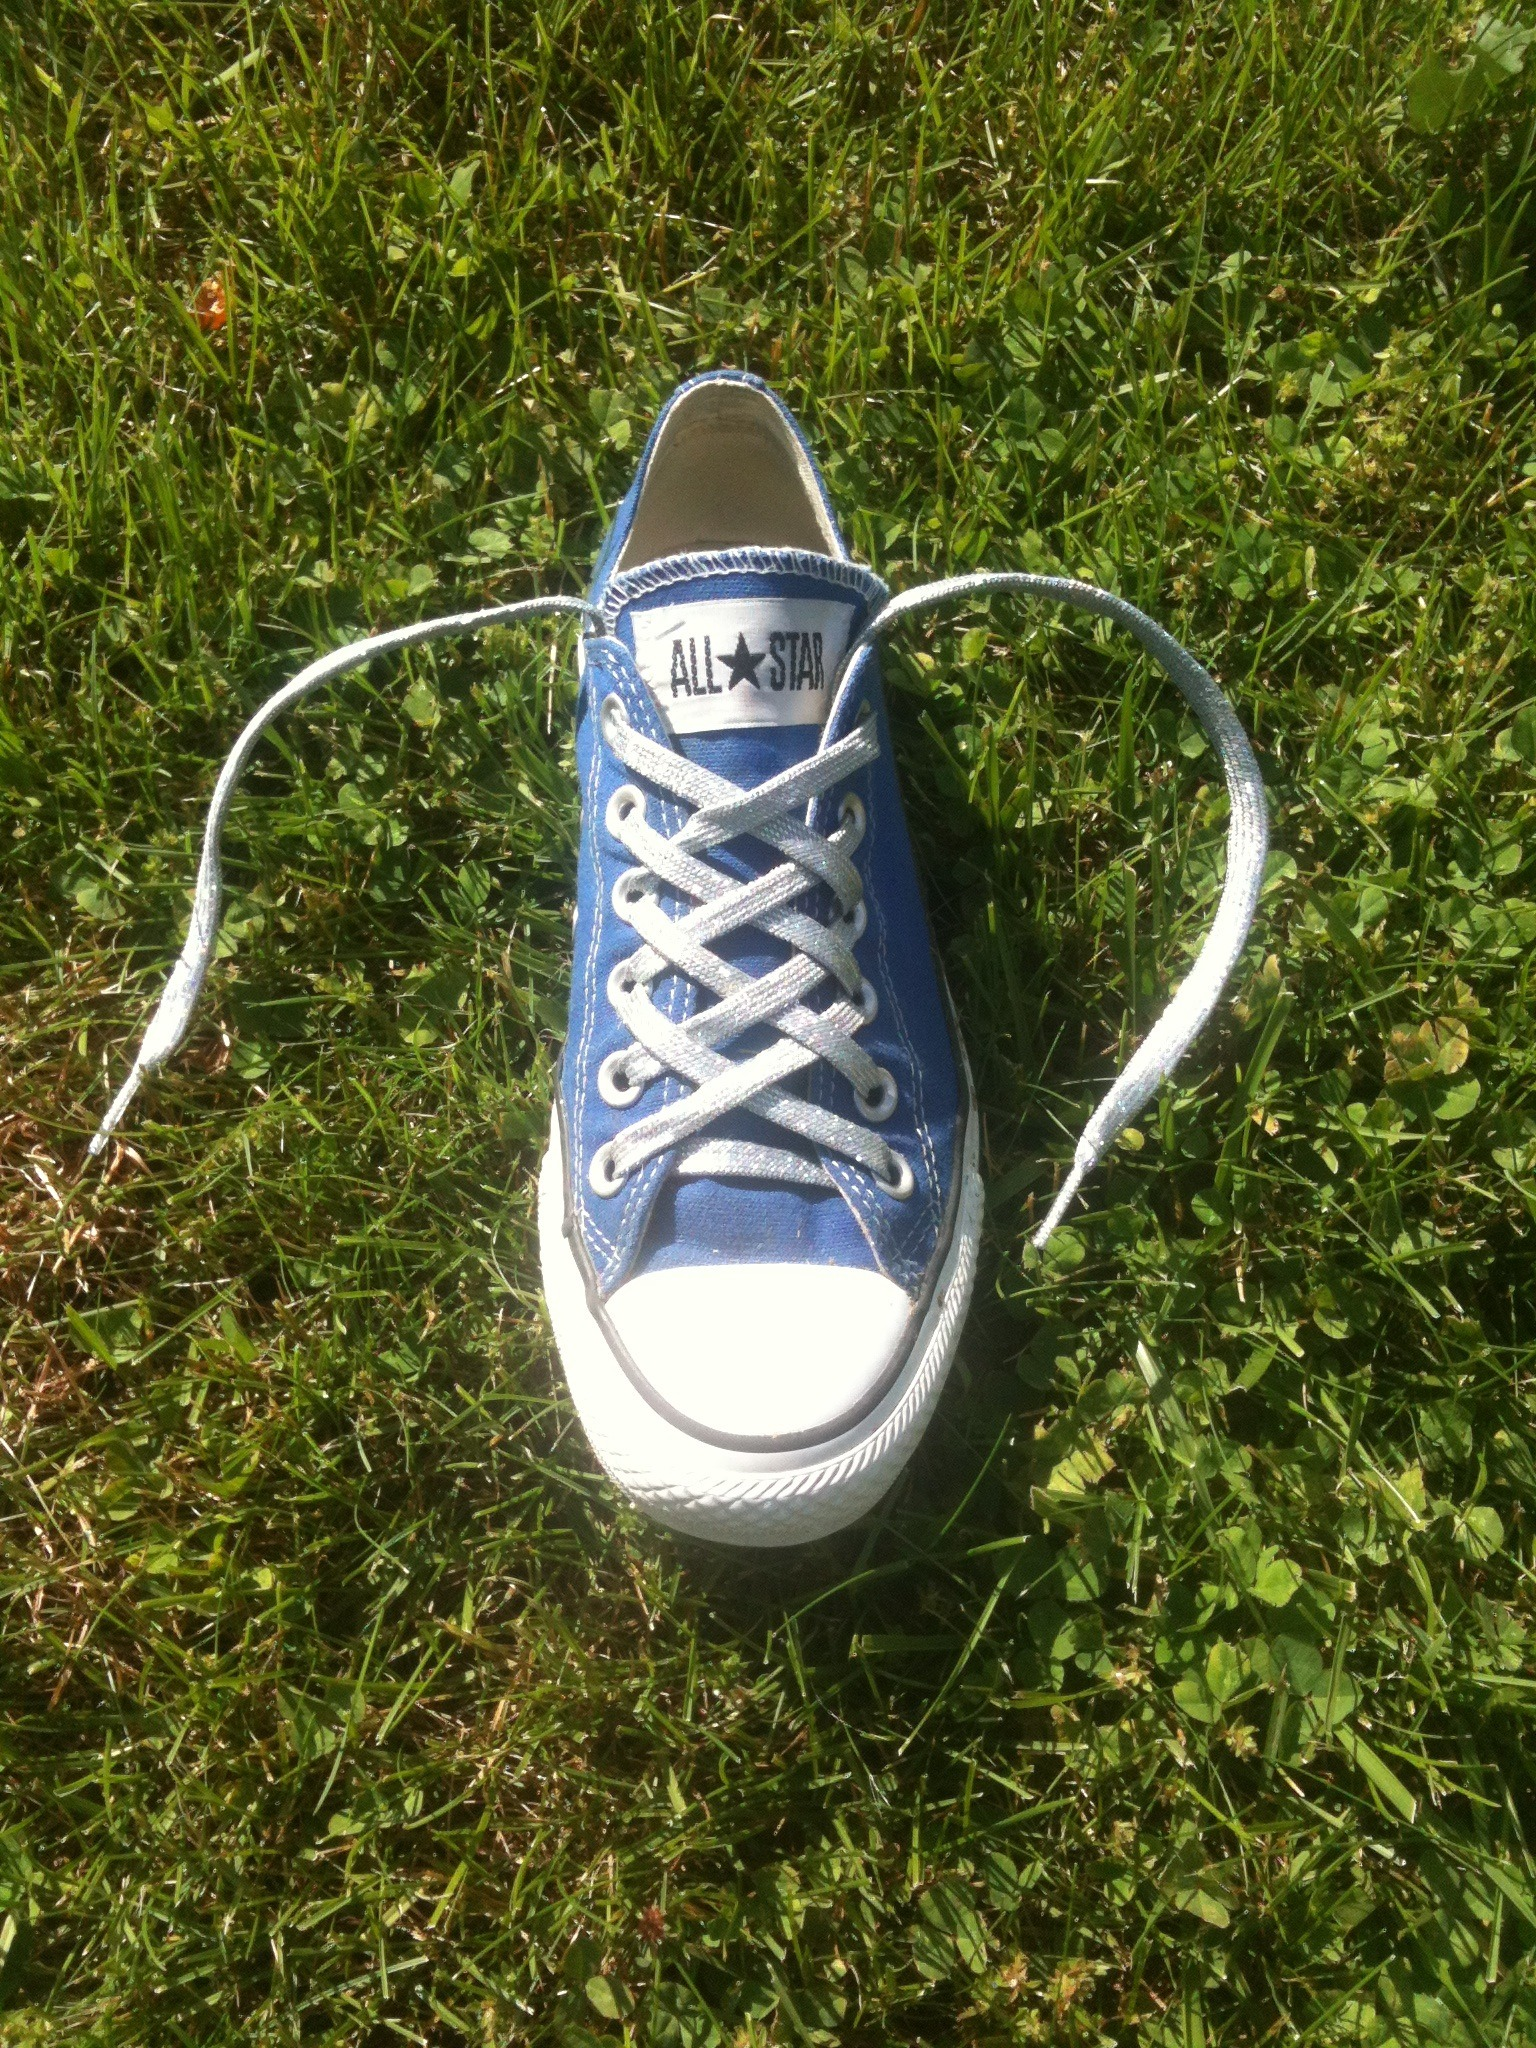 How To Double LatticeYour Converse